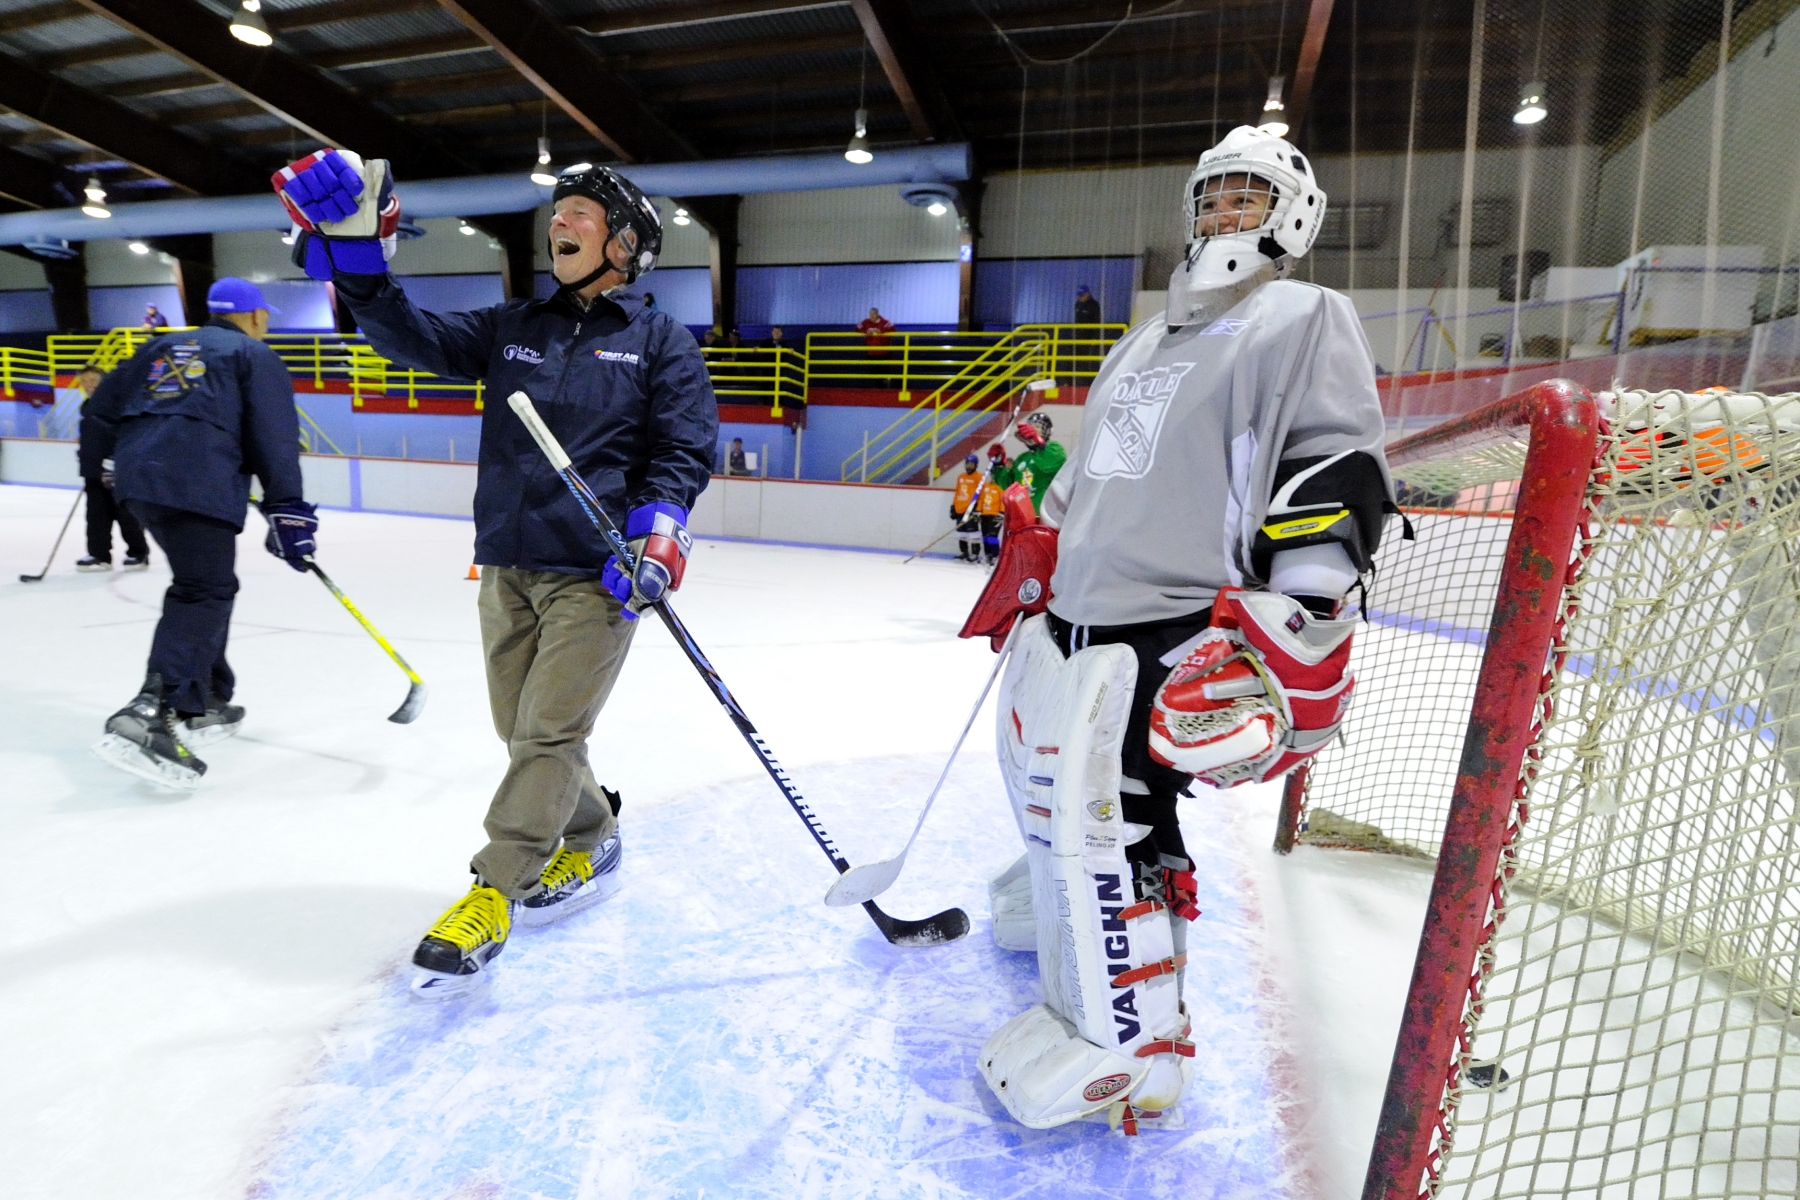 His Excellency also took part in a short series of drills with the players and coaches of the Nunavut Stars Hockey Camp. The Governor General managed to sneak in a goal past a young goalie.